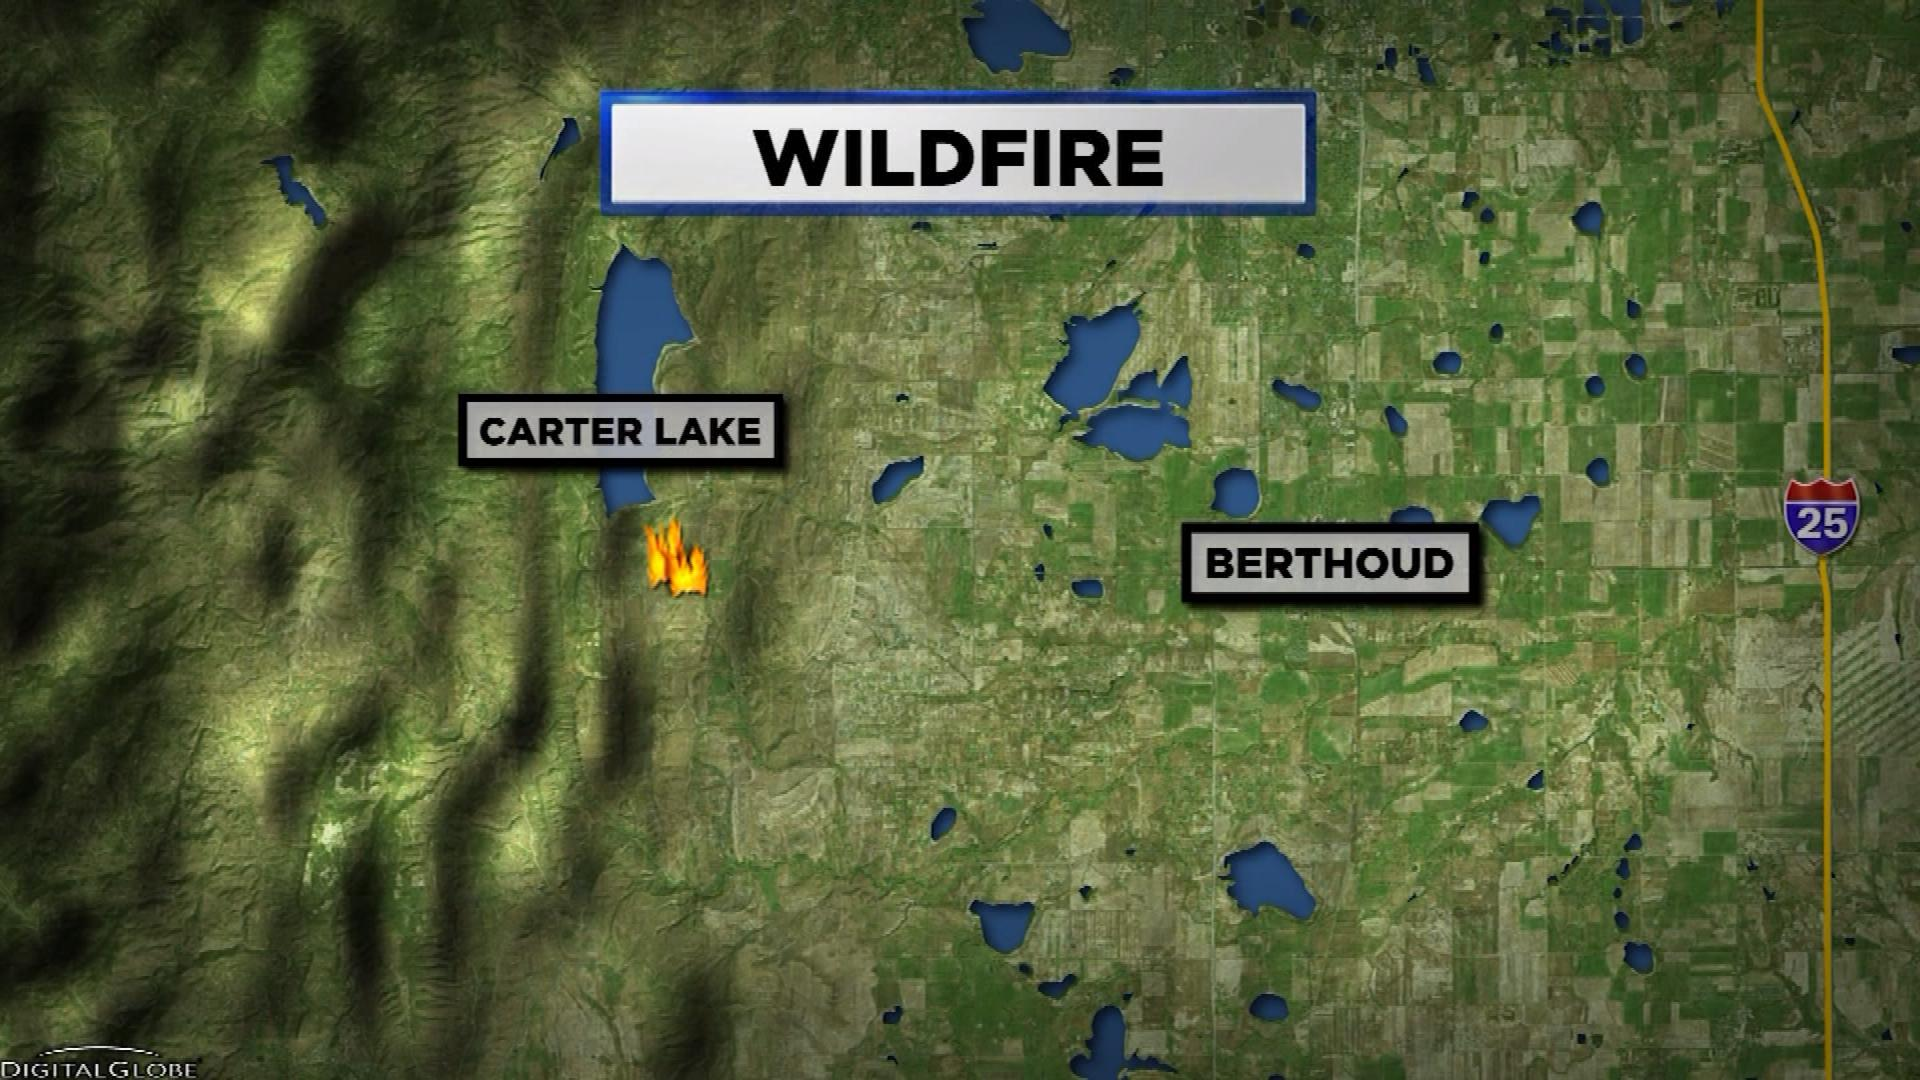 BERTHOUD FIRE MAP